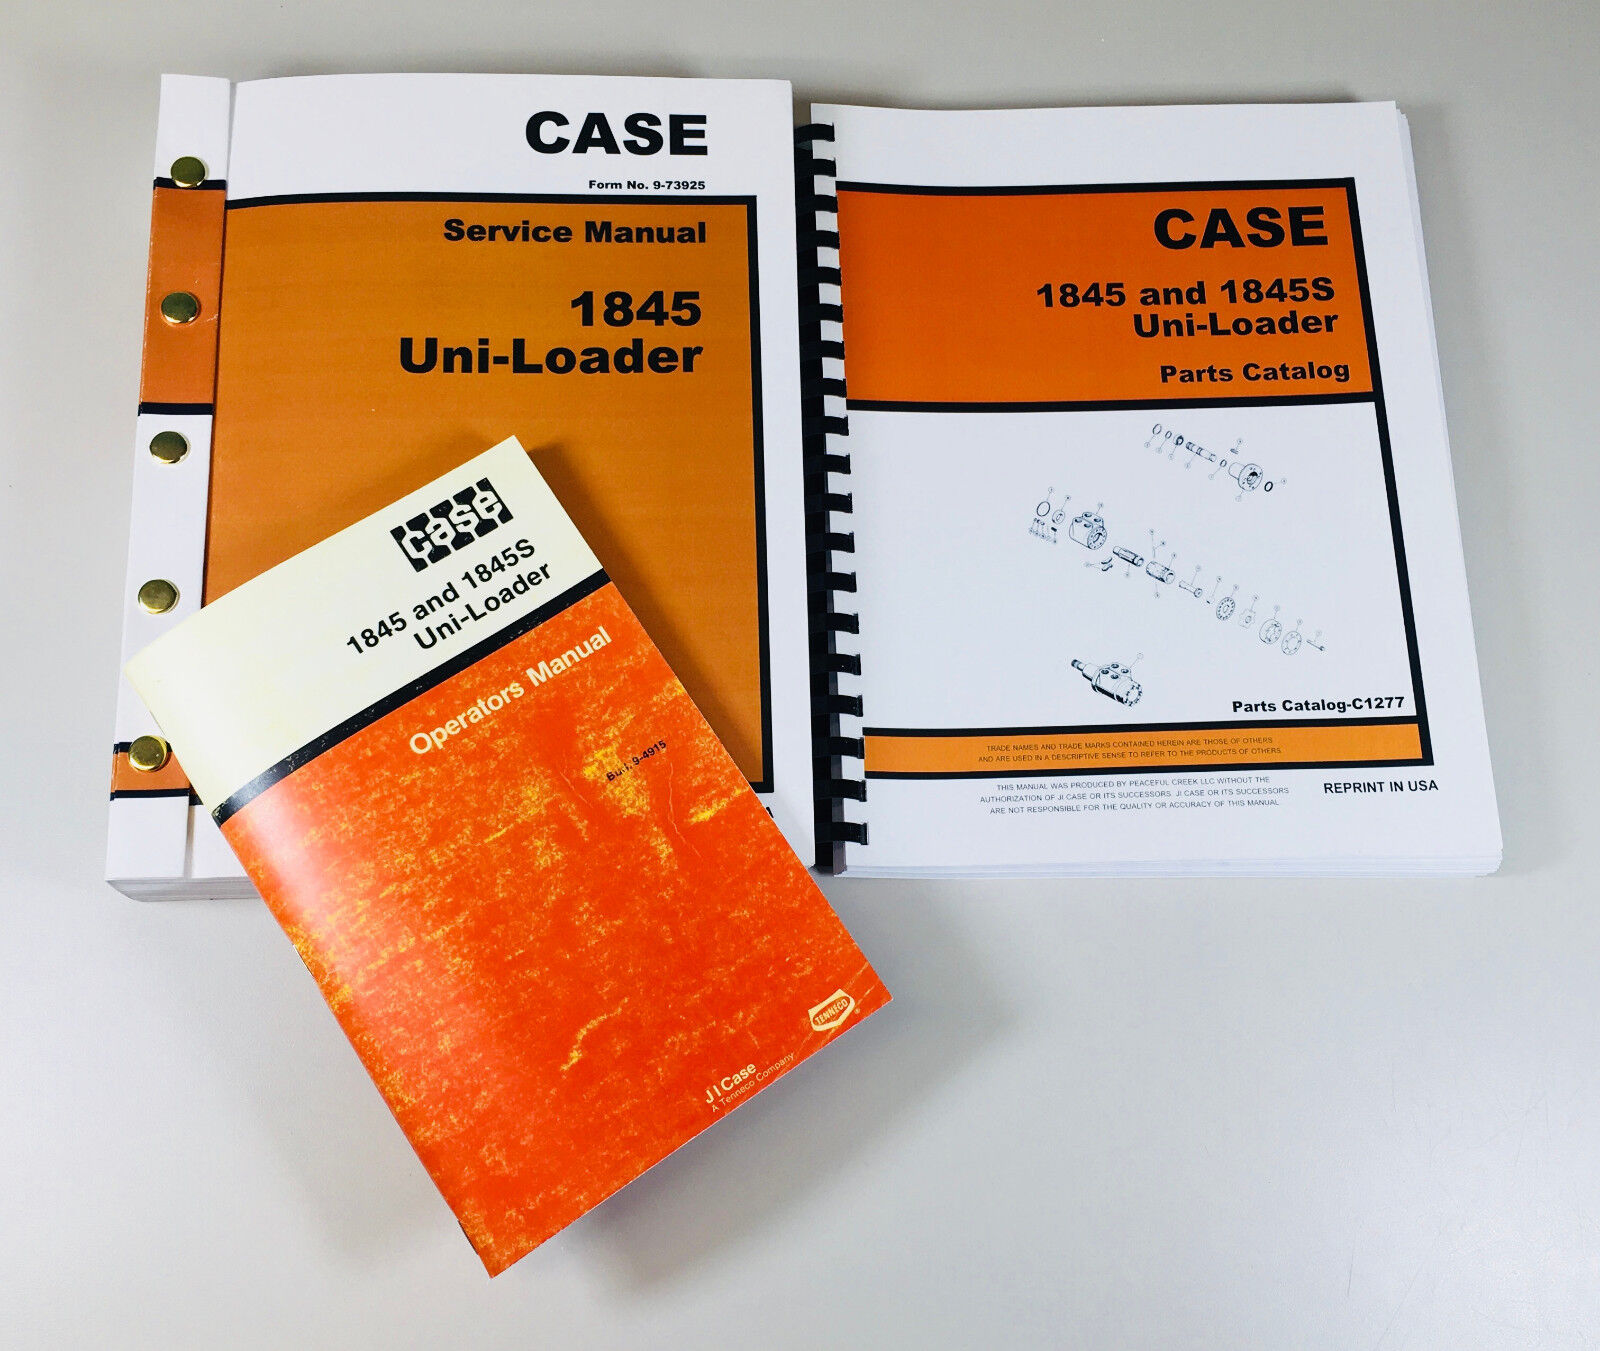 This comprehensive set of manuals include